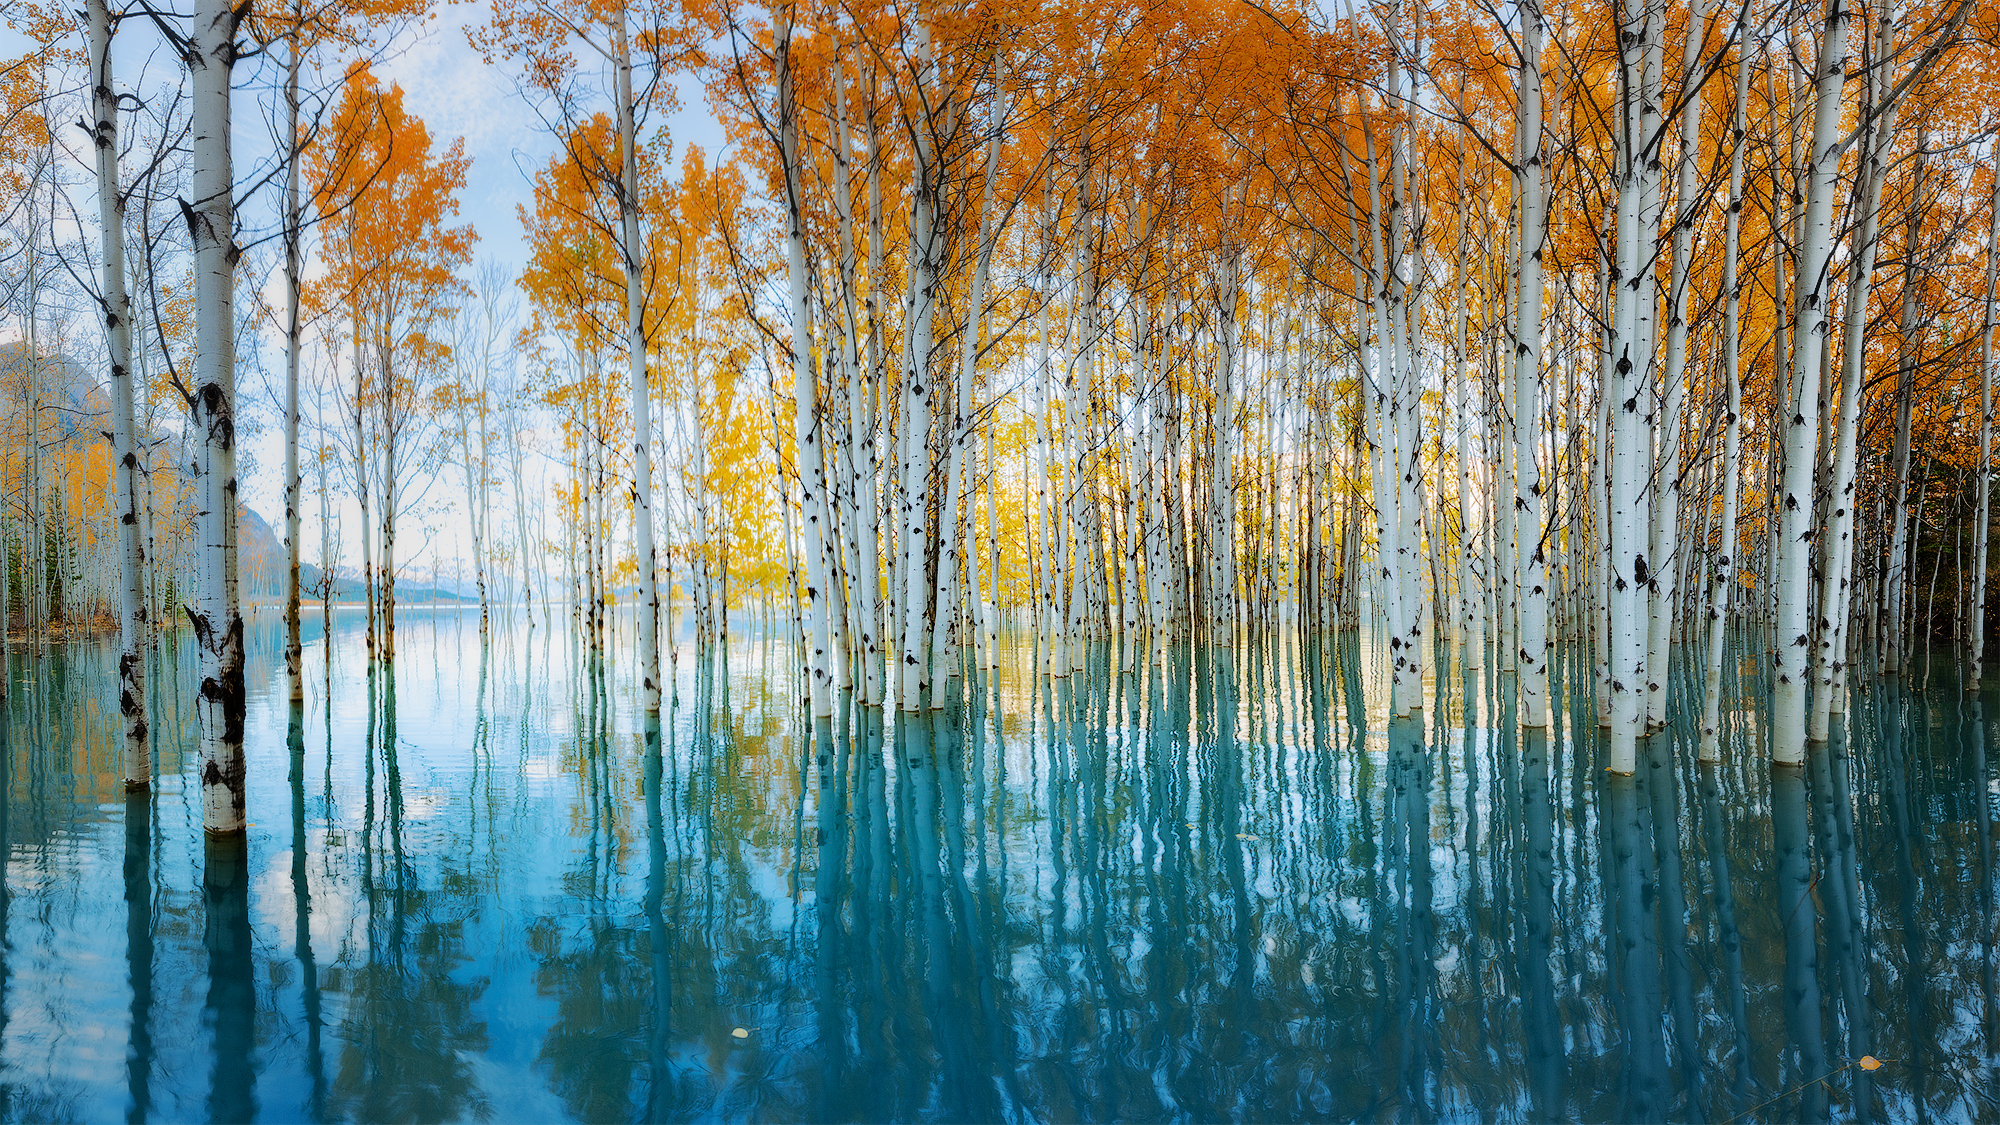 Fall trees reflect on a still blue lake